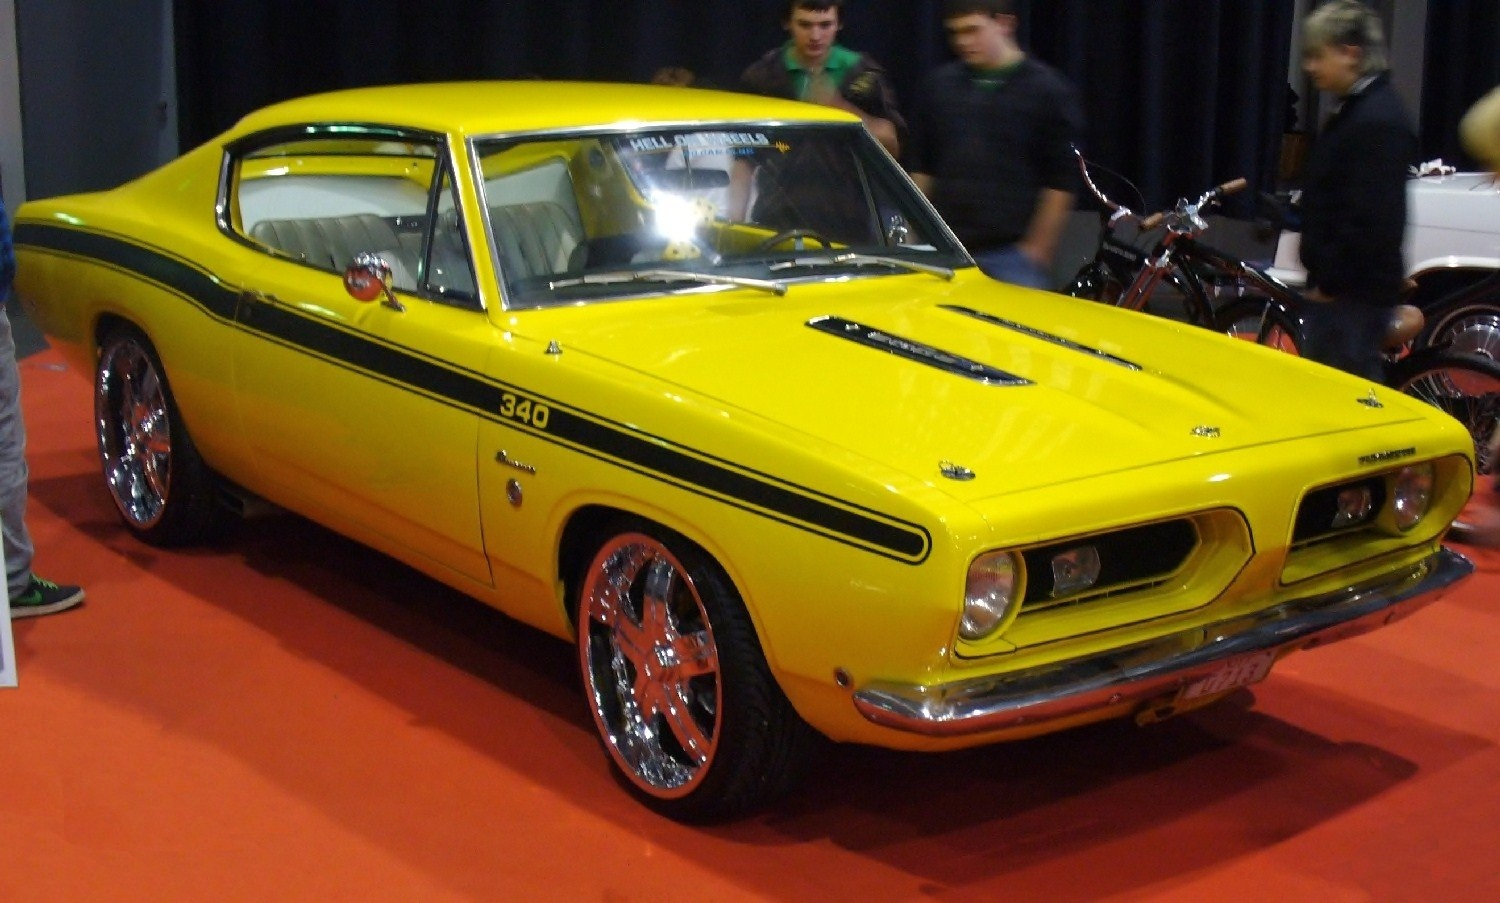 File:Plymouth Barracuda Tuning AME.jpg - Wikimedia Commons